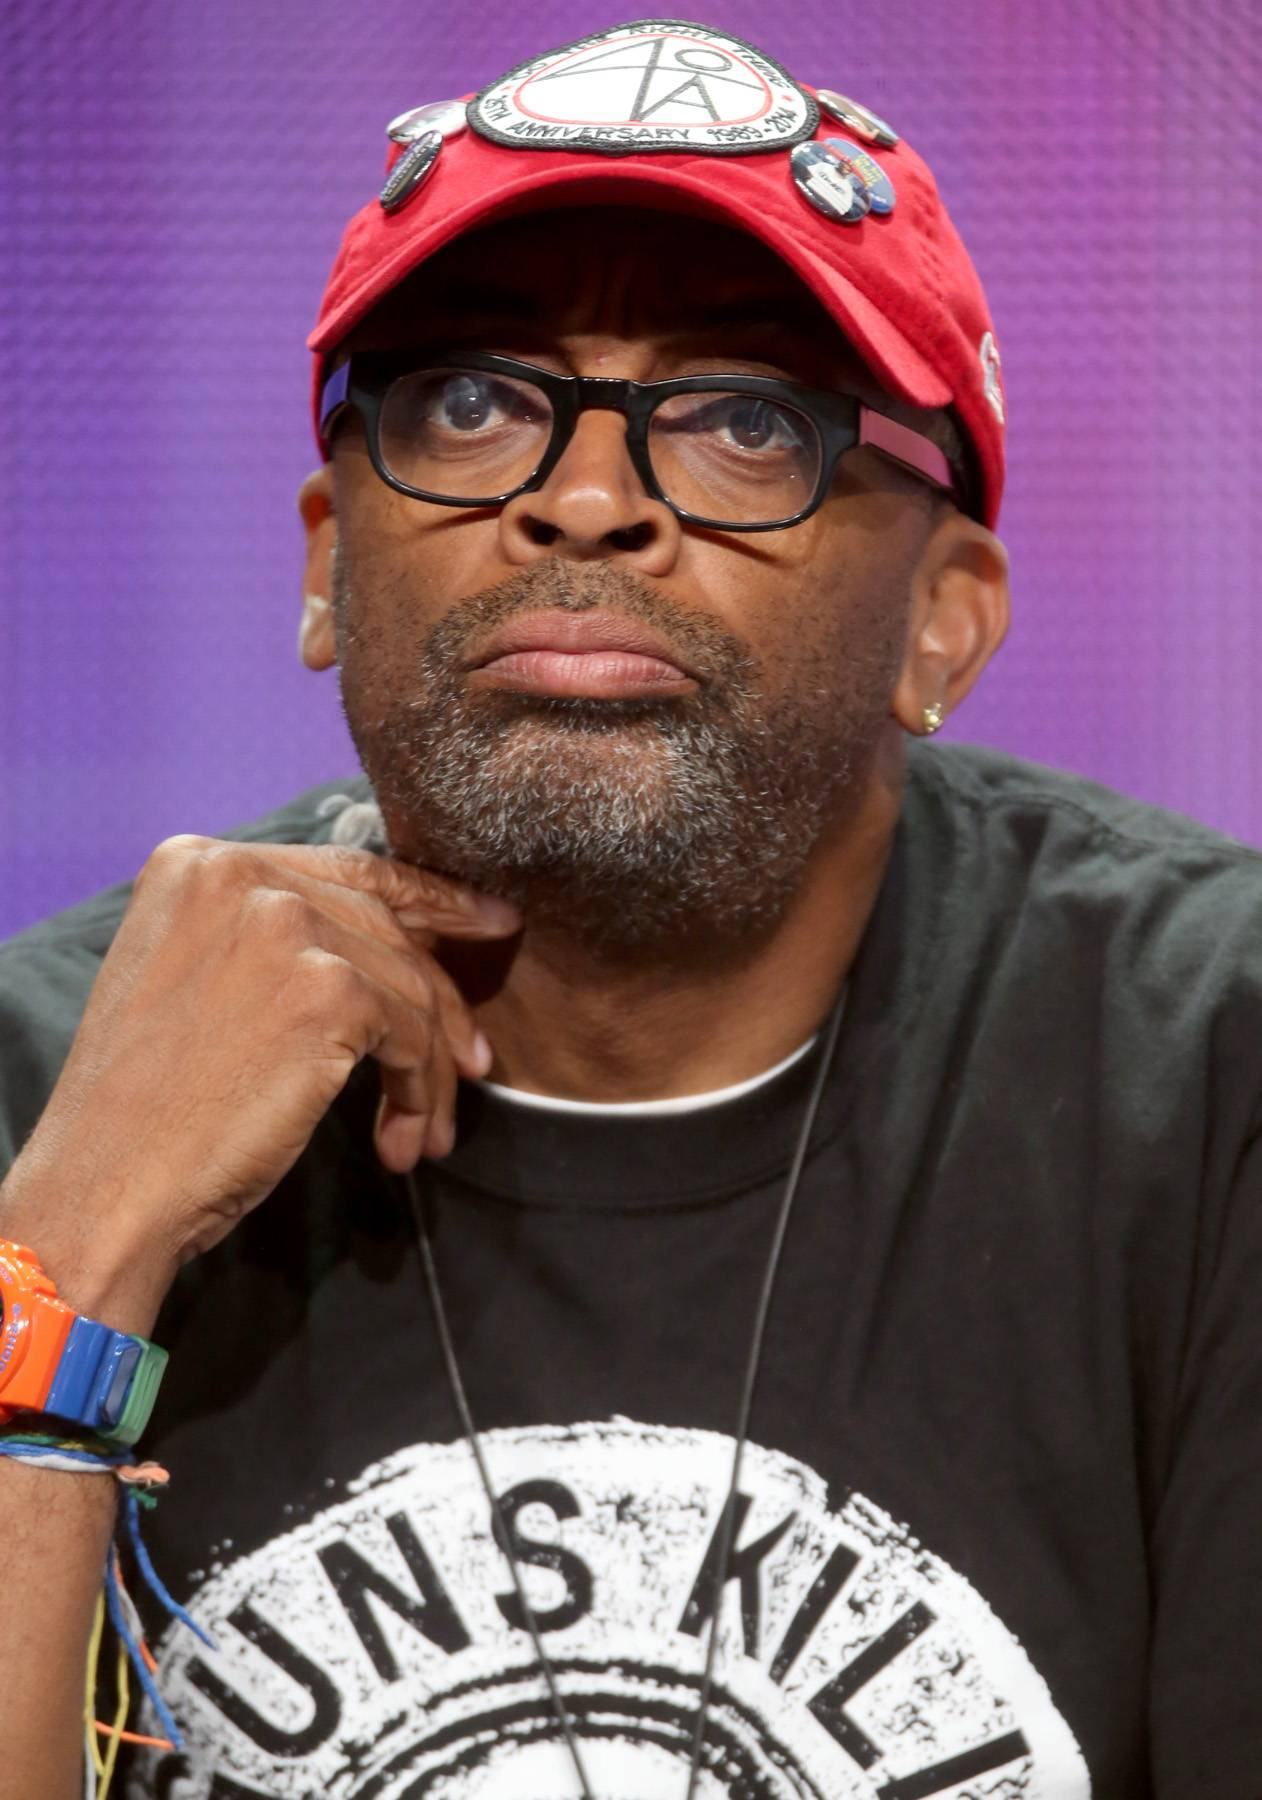 Spike Lee's Legal Drama - Spike Lee will have to return to court due to a George Zimmerman tweet he put out last year. The drama started when Spike Lee tweeted an address that he attributed to being Zimmerman's home residence. However, it turned out that the address actually belonged to a couple that had nothing to do with Zimmerman.   Said couple sued Lee for $1.2 million but Leeapologized and paid them $10K as part of a settlement. However, according to reports, the couple filed suit again despite the settlement claiming they were still receiving hate mail and threats along with pain and suffering due to fear. They also said they had to move out of their home as a result of Lee?s tweet. Lee countersued saying that he already settled this and on July 23, the courts sided with the famed director and dropped the case.   But there's more...the couple is demanding an appeal cla...